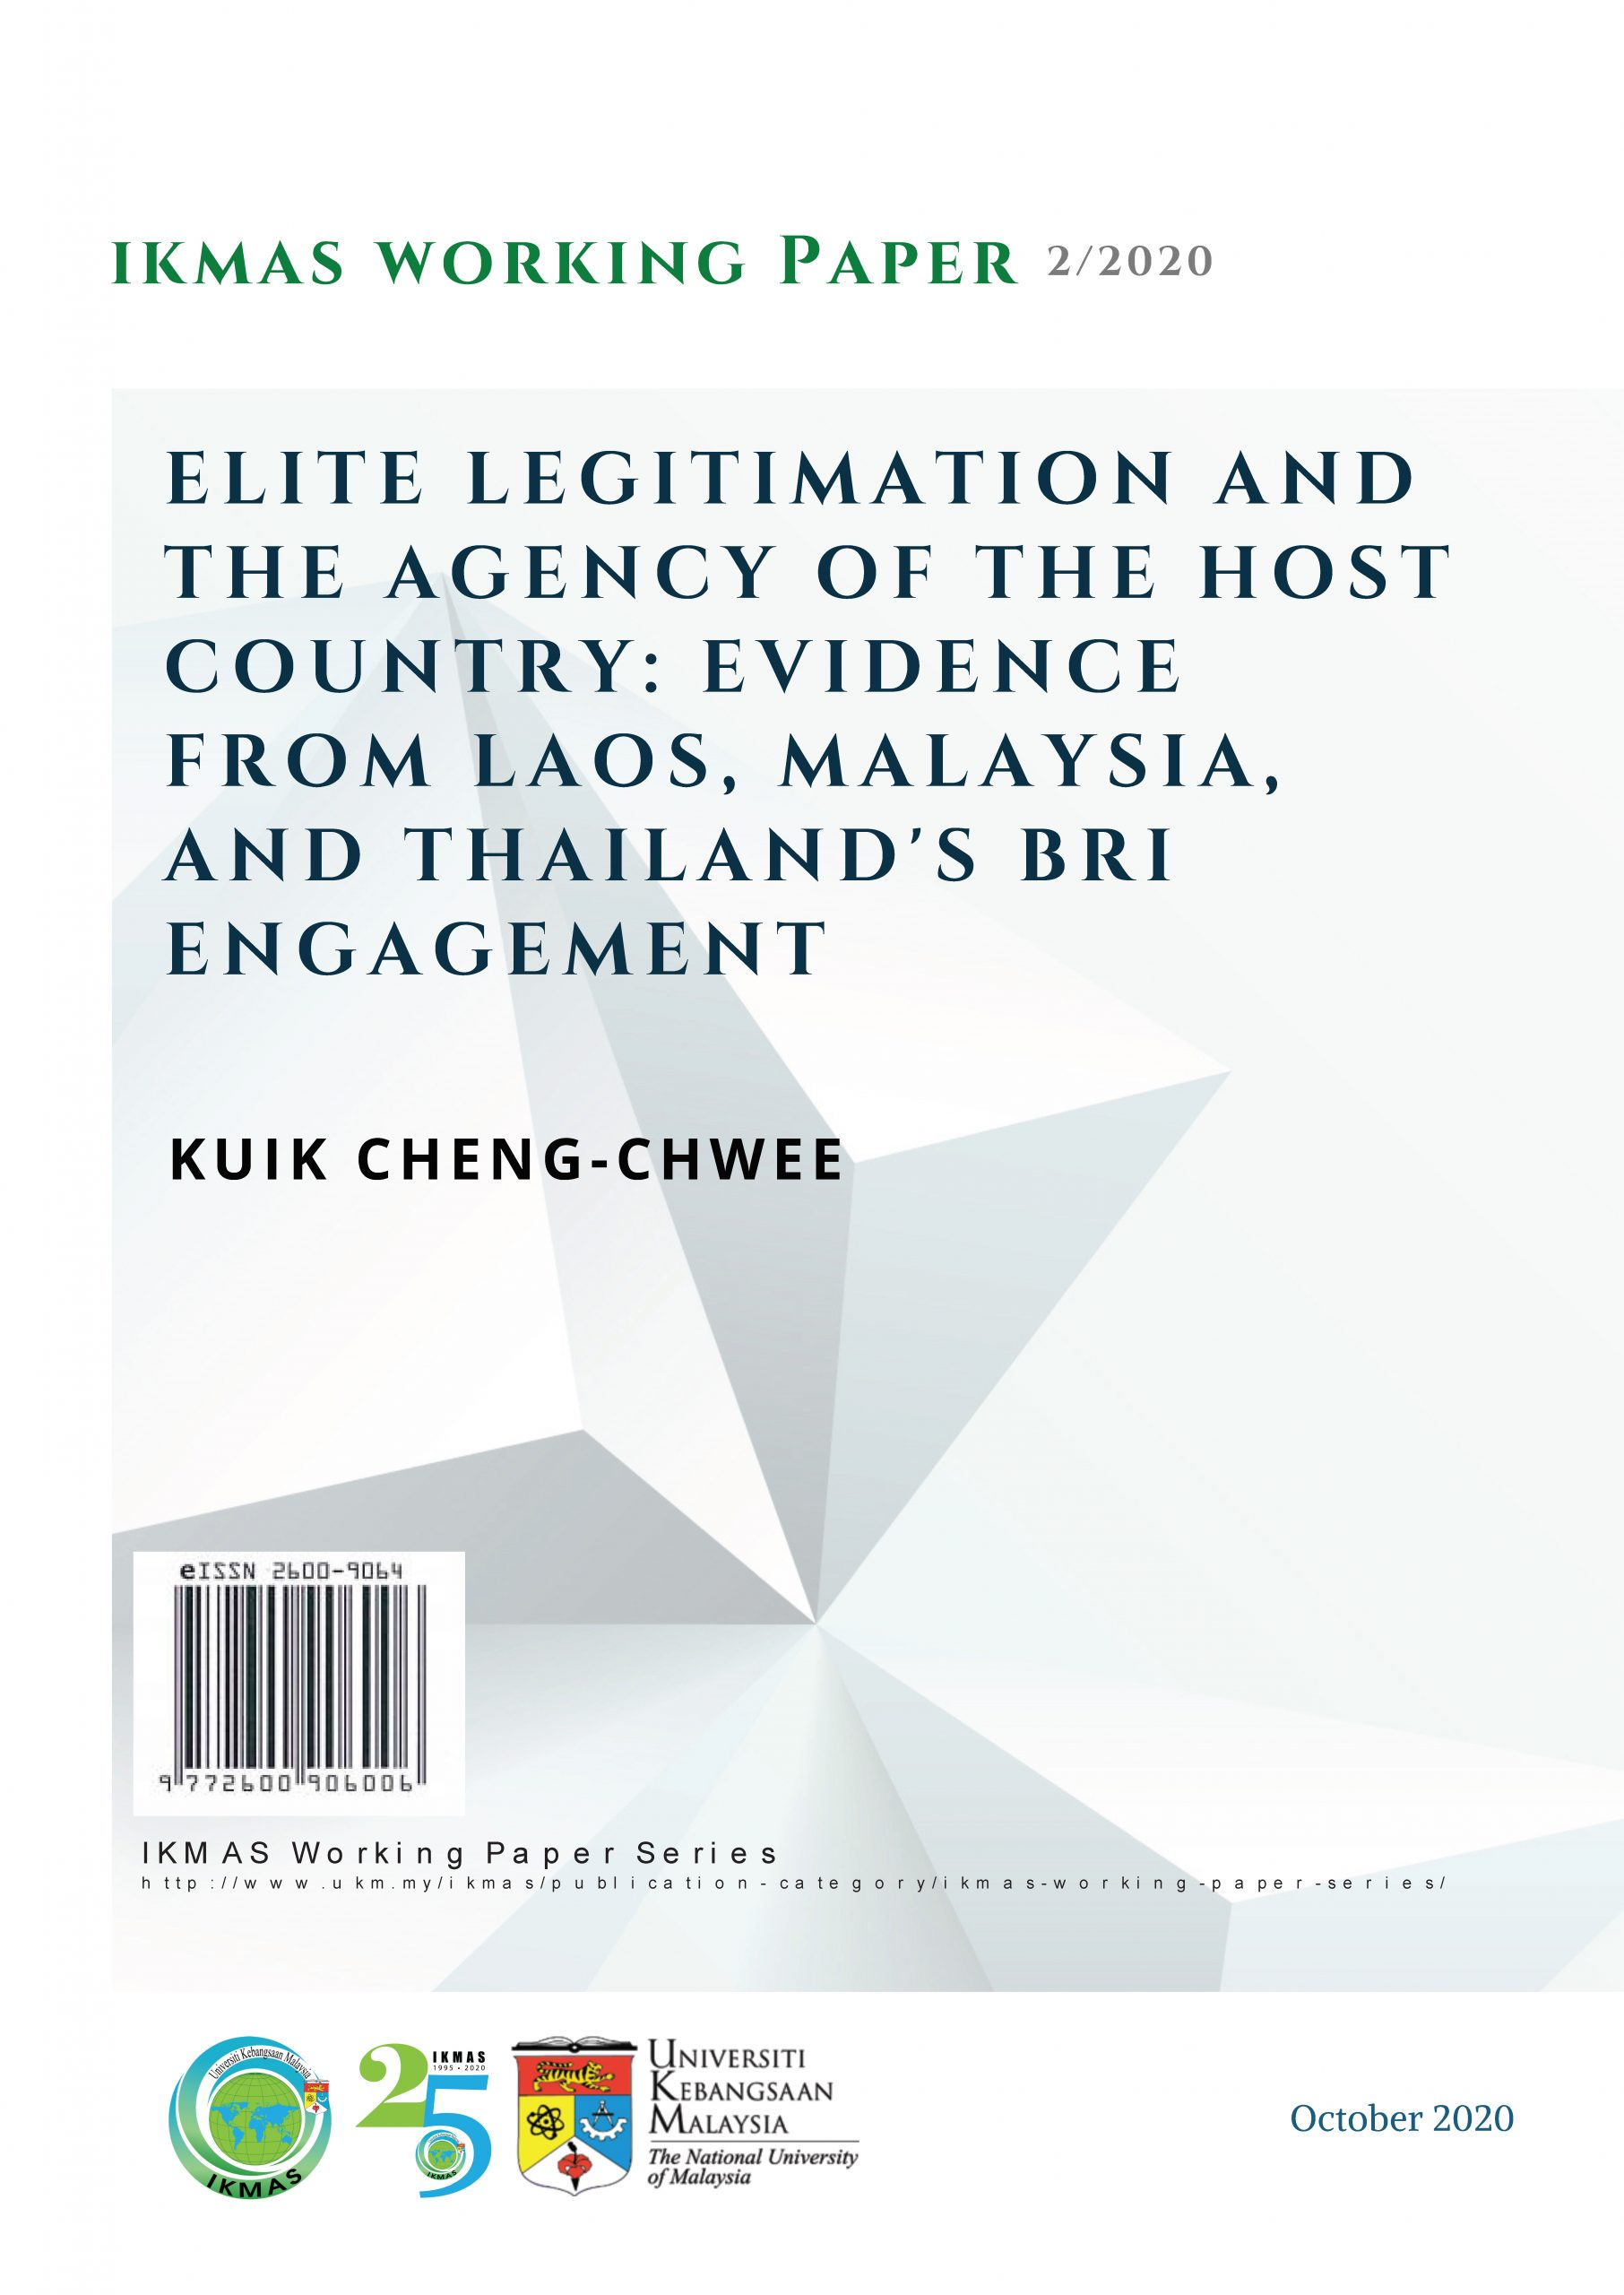 Elite Legitimation and the Agency of the Host Country: Evidence from Laos, Malaysia, and Thailand's BRI Engagement